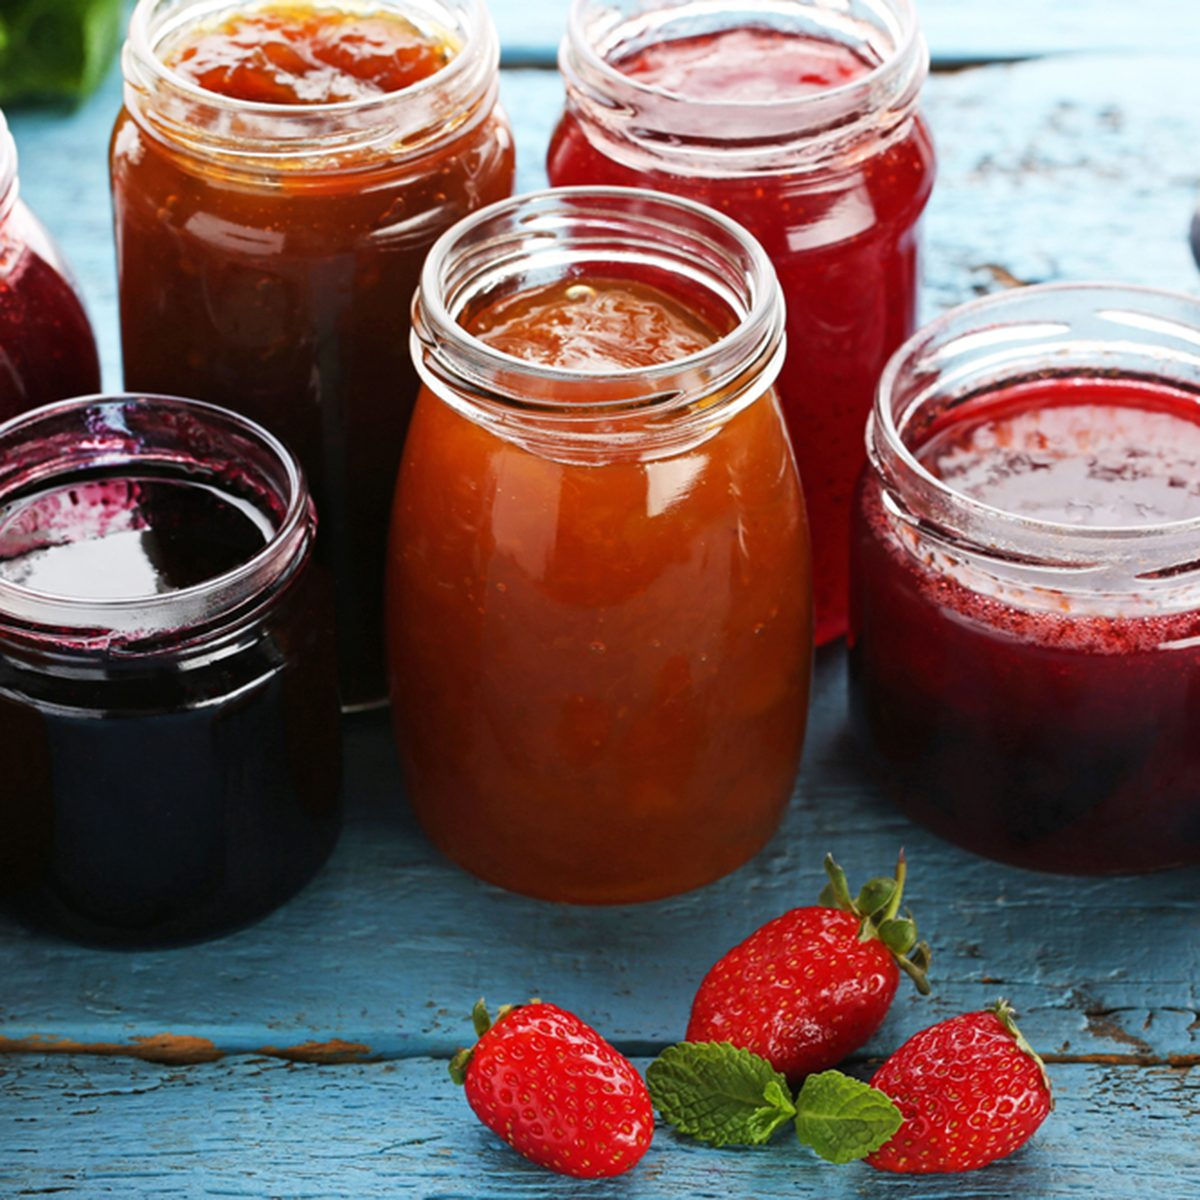 Glass jars with different kinds of jam and berries on wooden table